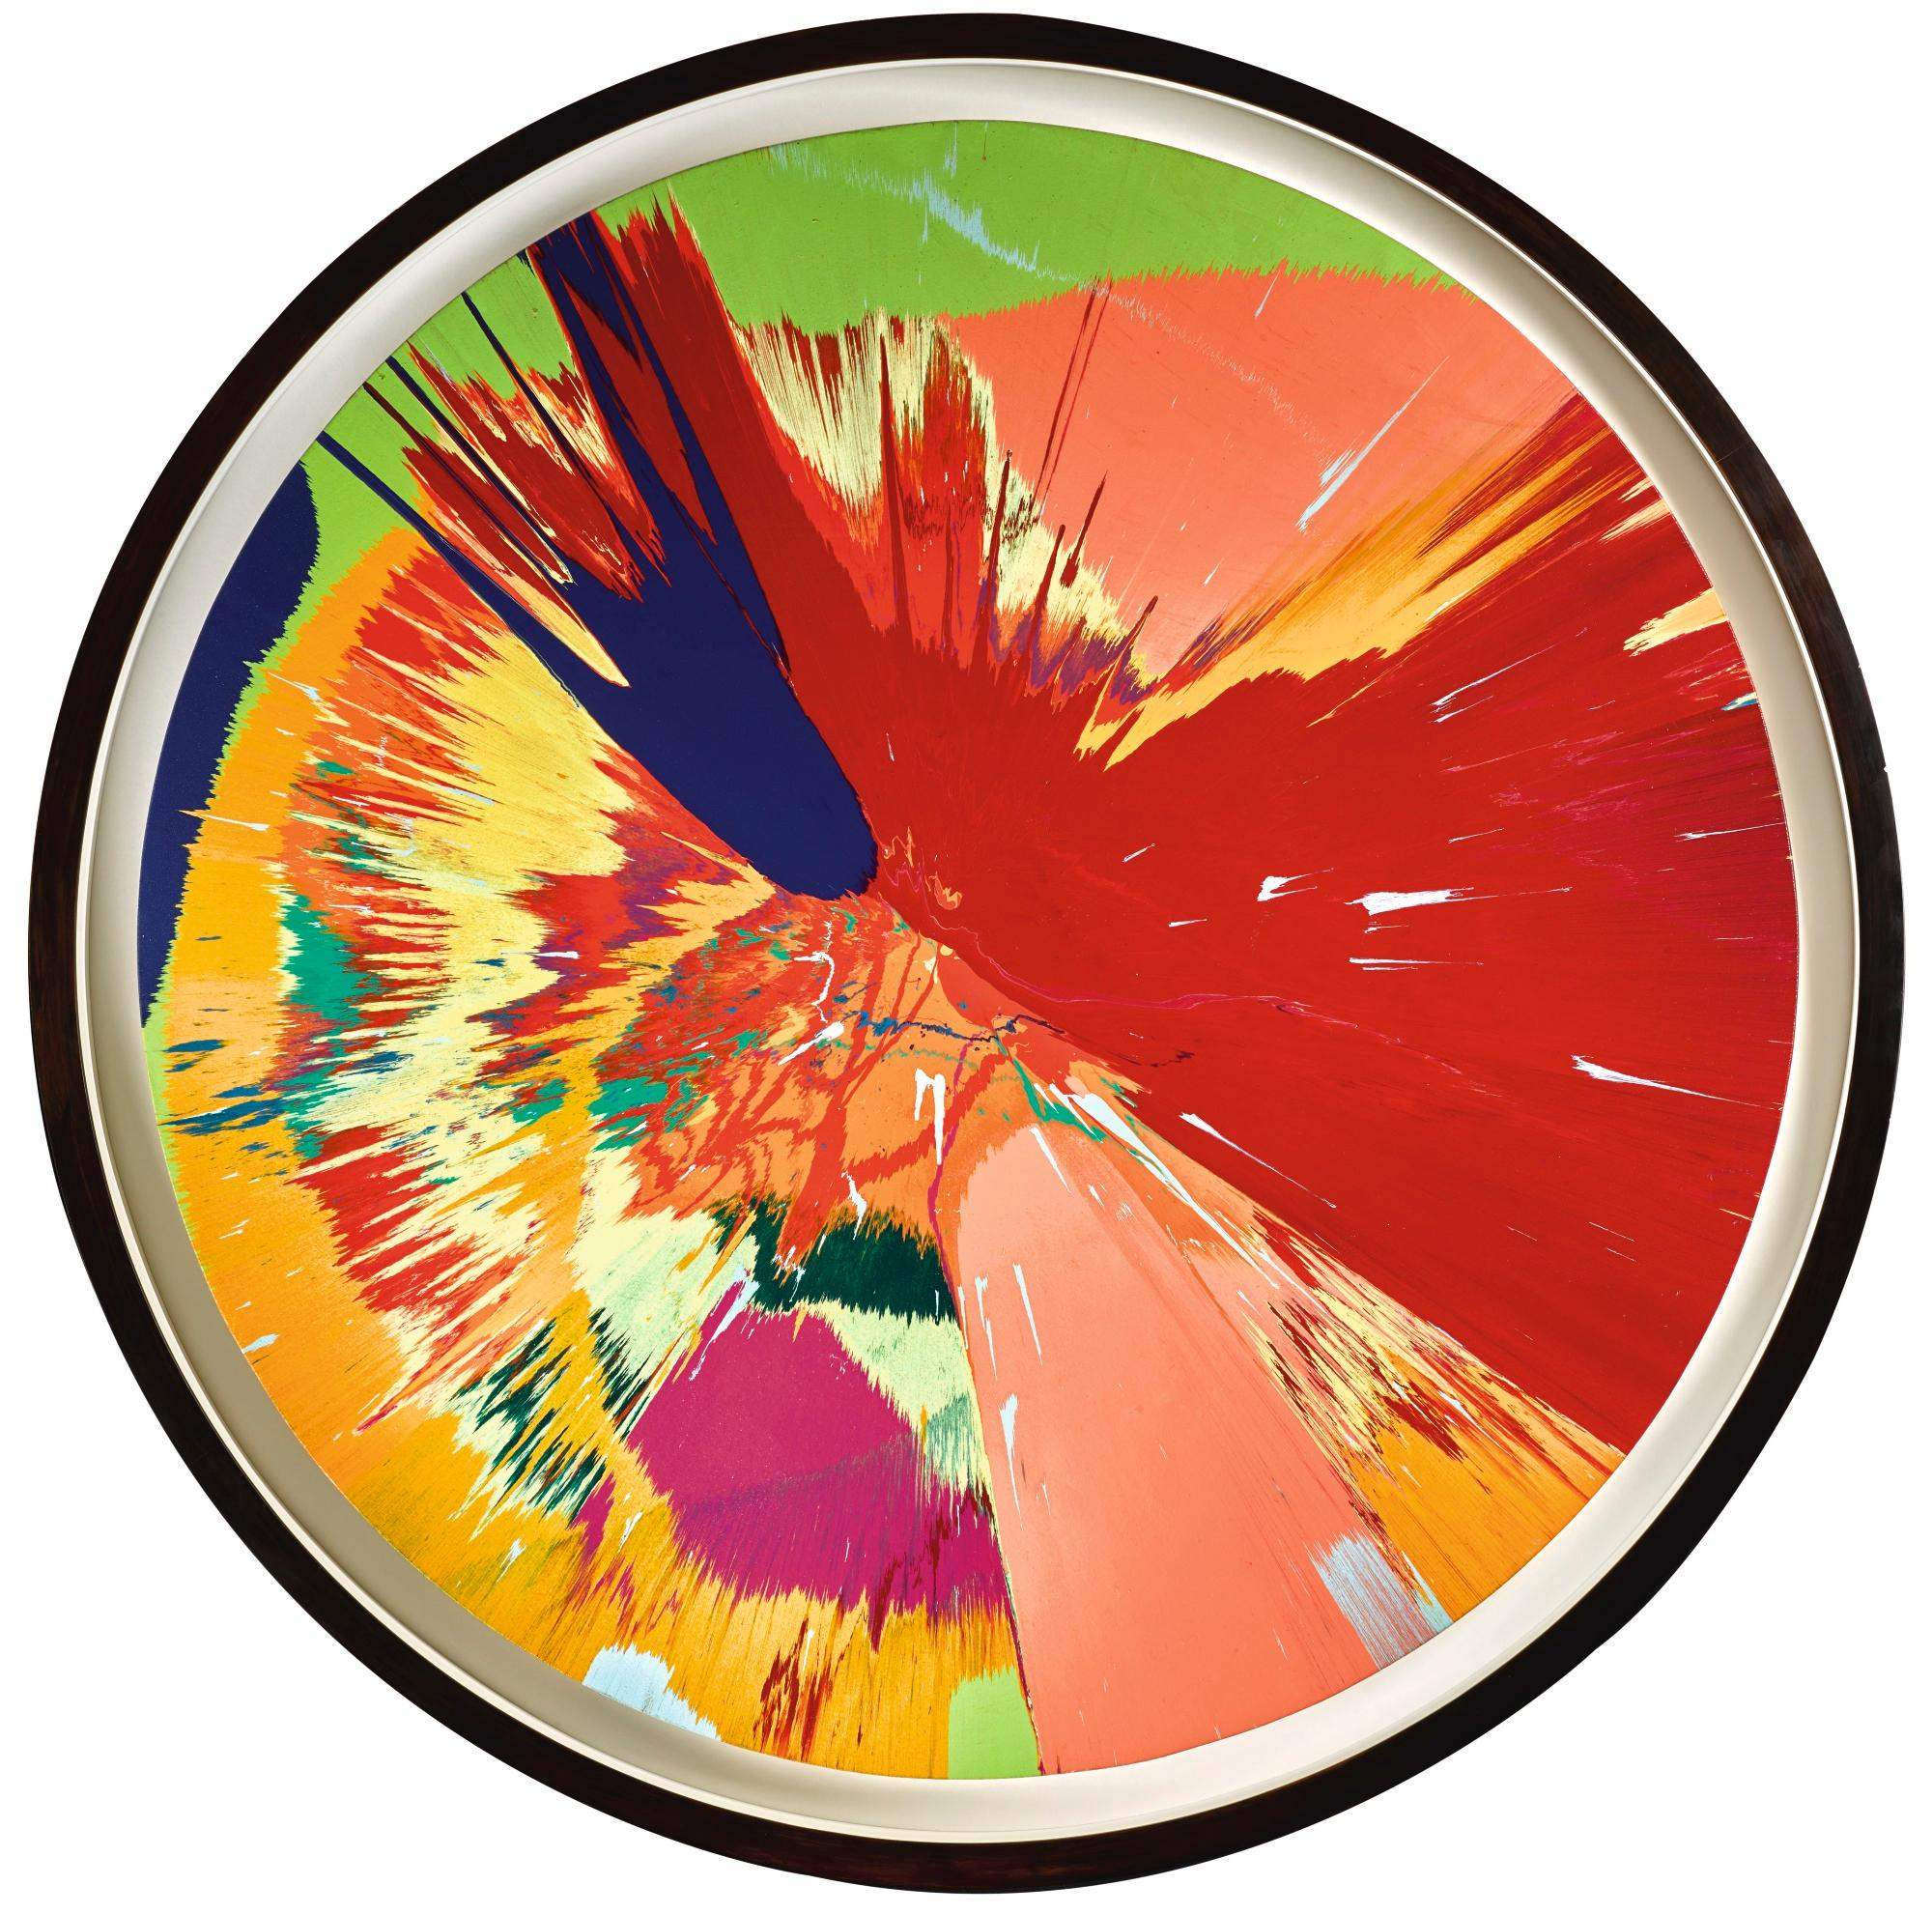 Beautiful, Intense, Violently, Gorgeous, Painful, Invading Love, Painting by Damien Hirst